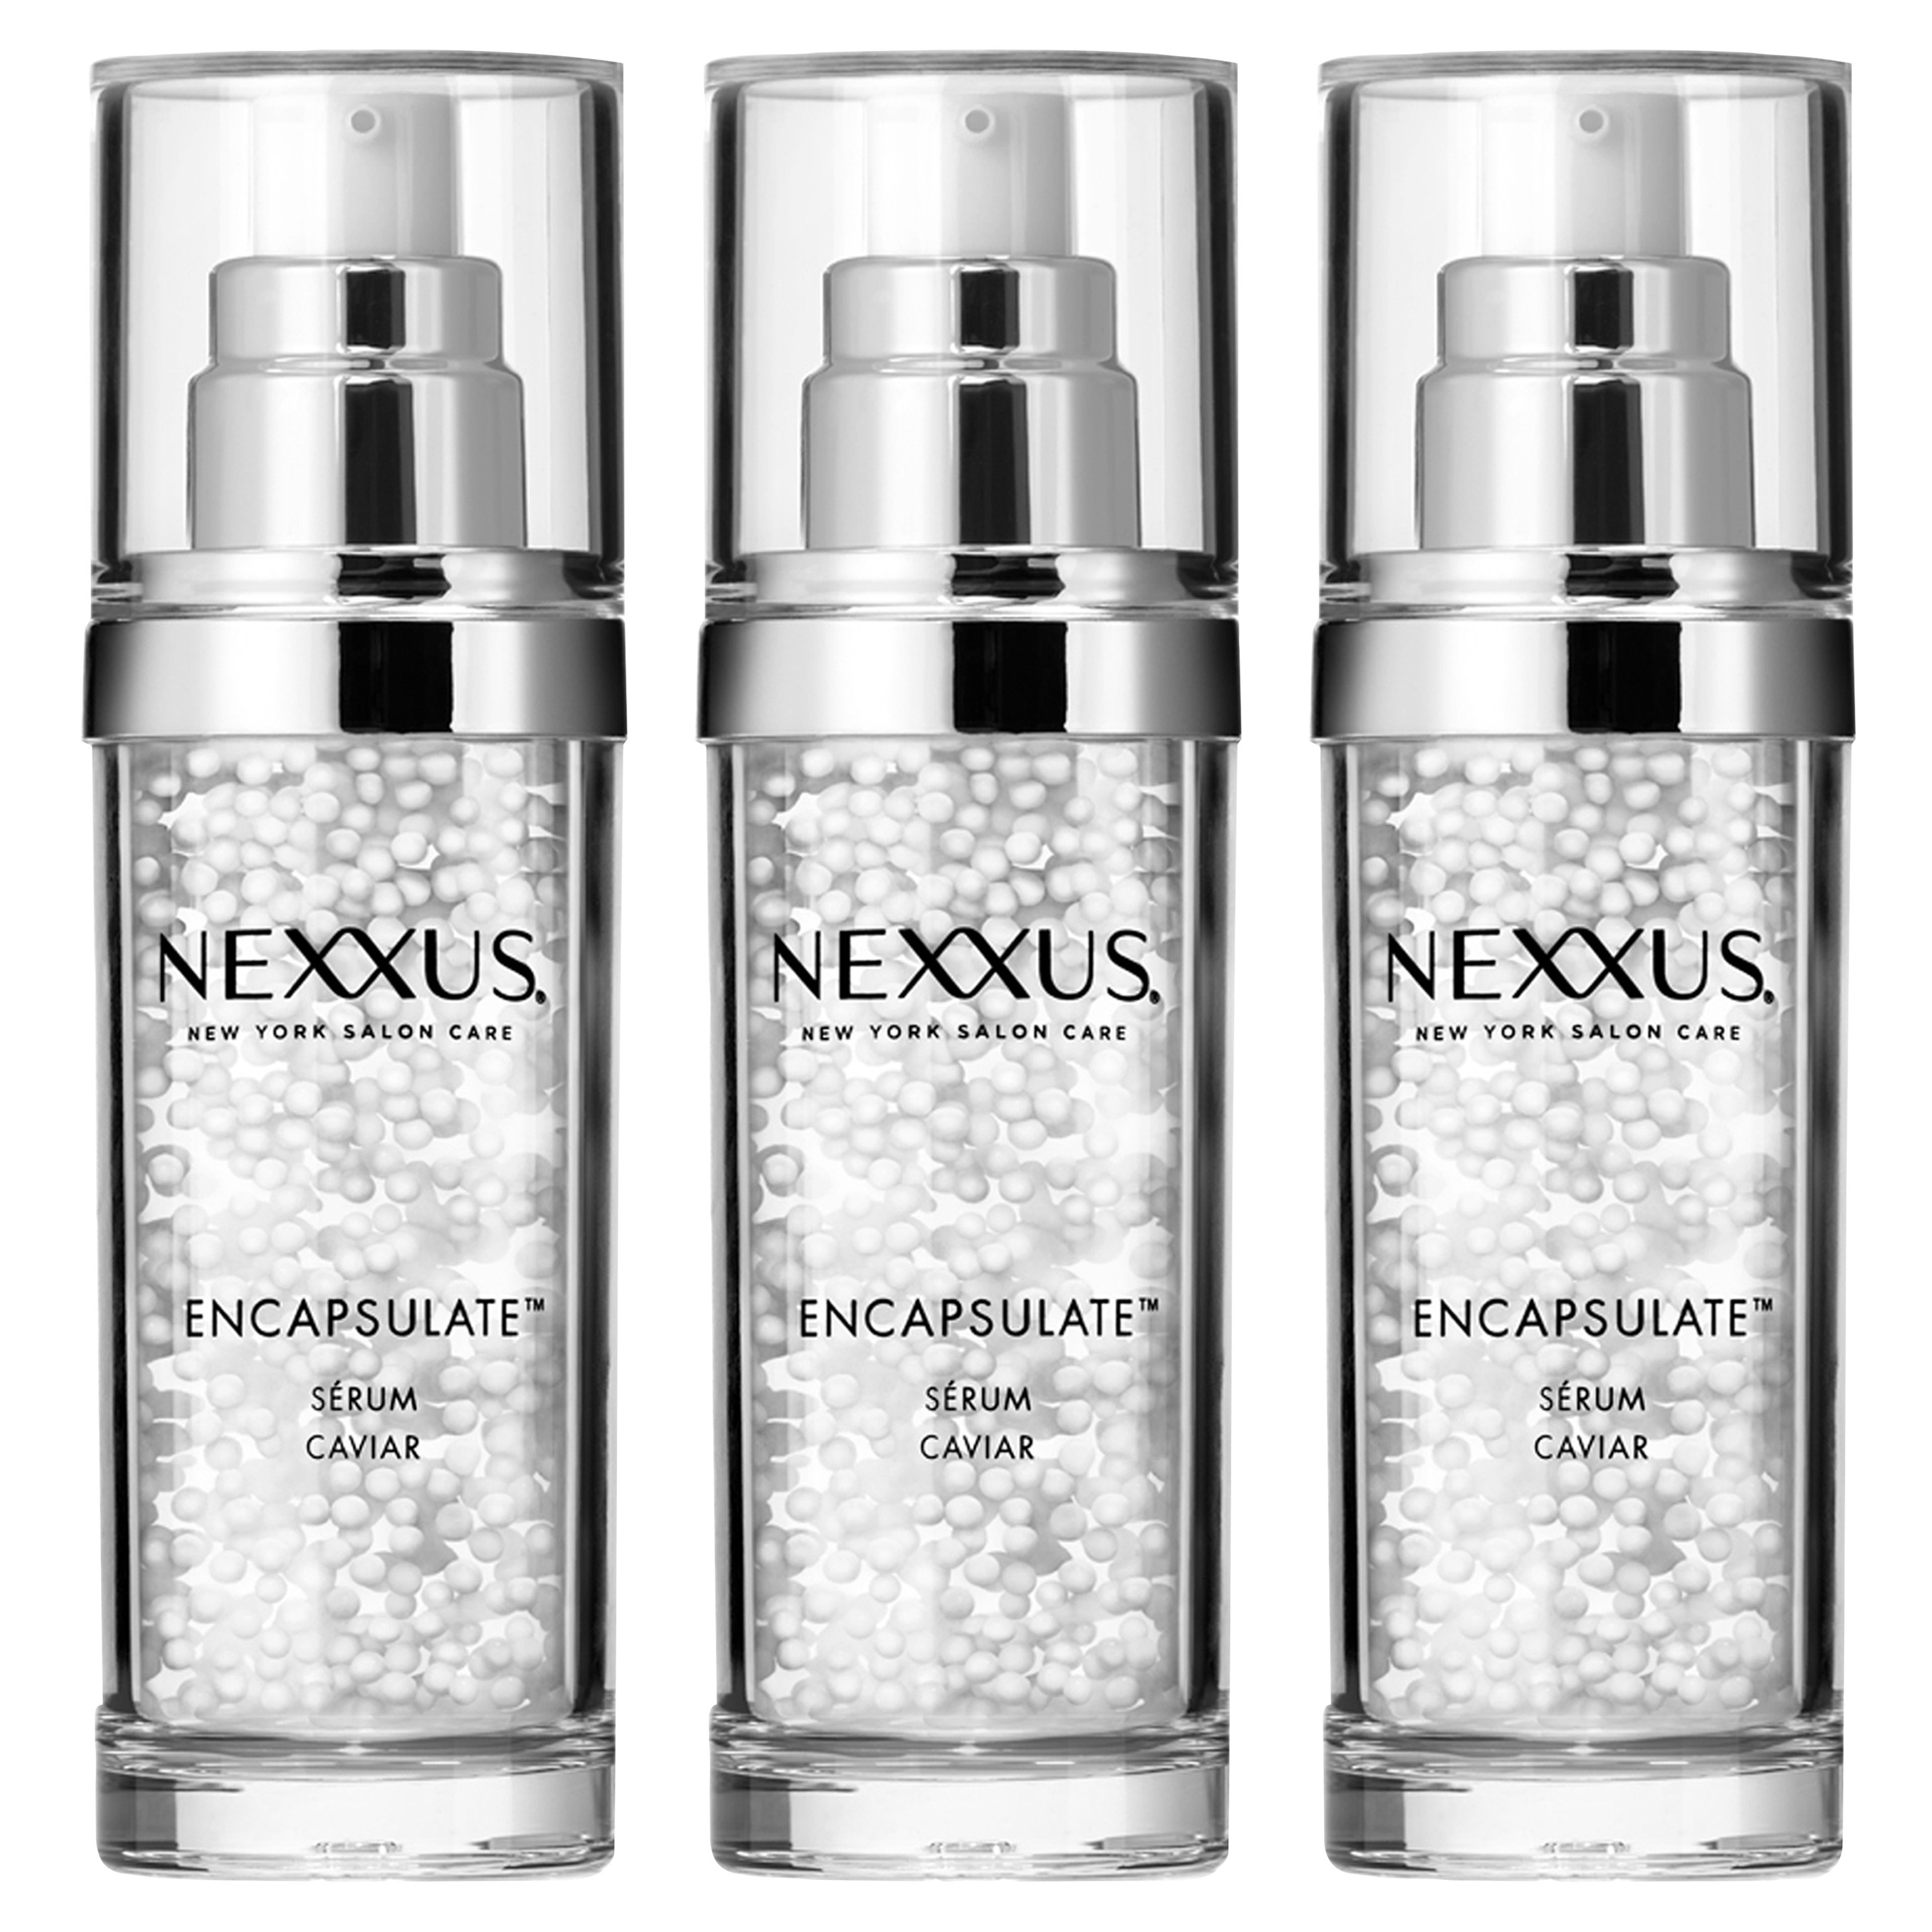 Nexxus Humectress for Normal to Dry Hair Serum, 2.36 oz, 3 count